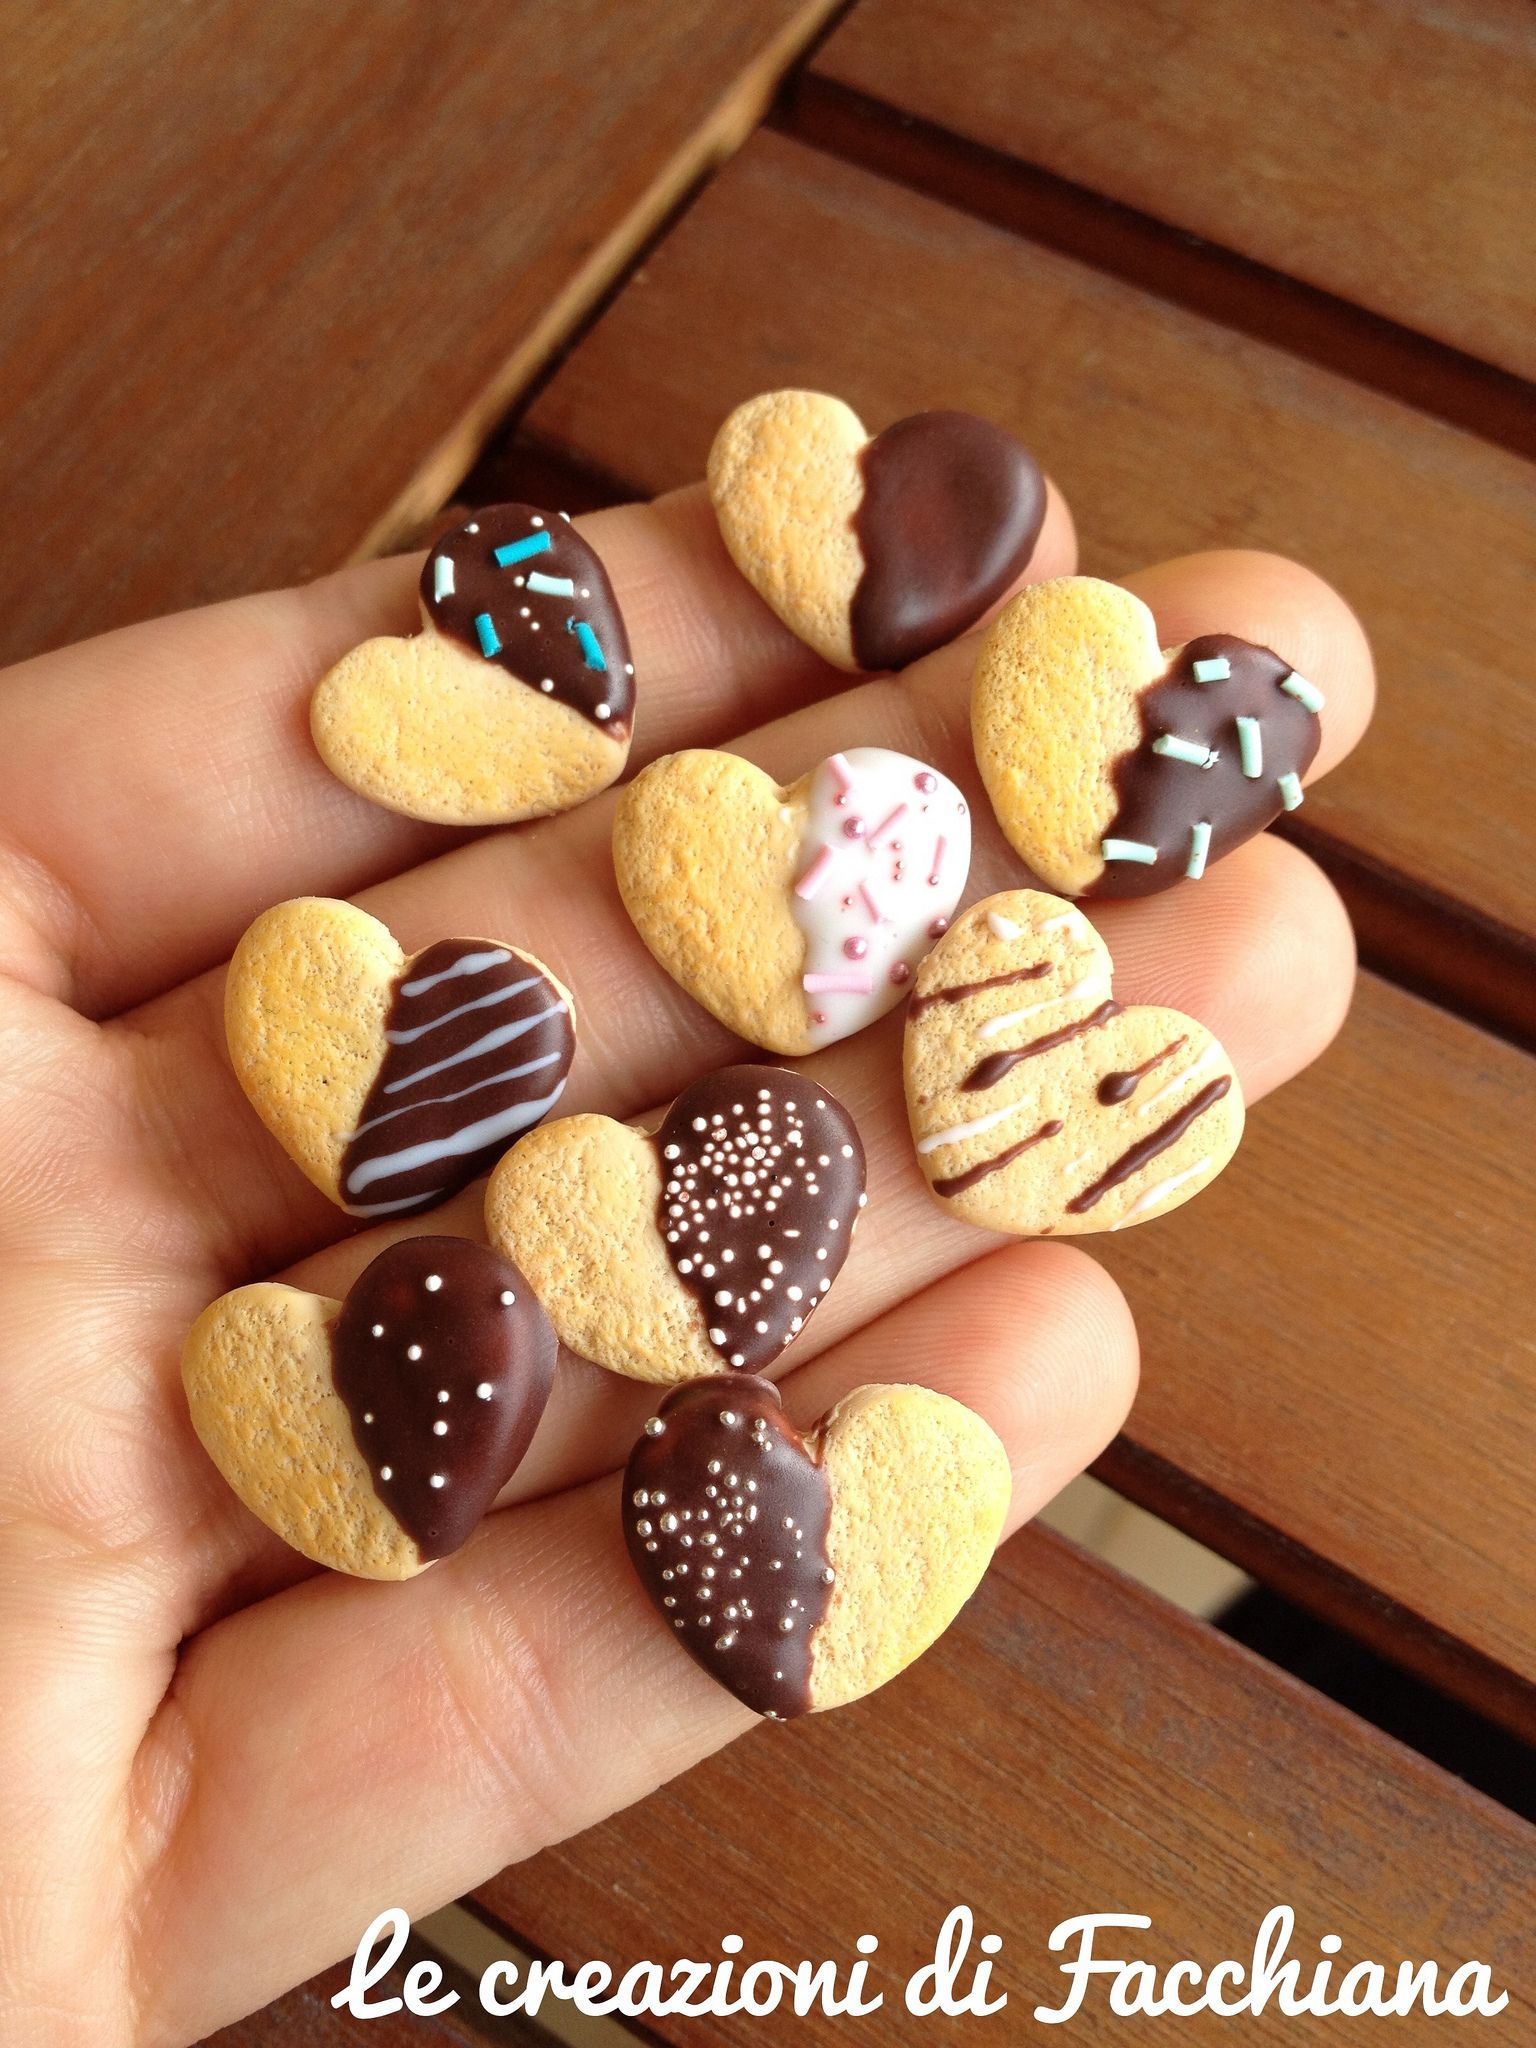 Chocolate Covered Heart Biscuit Miniature Clay Food Miniature Food Polymer Clay Miniatures